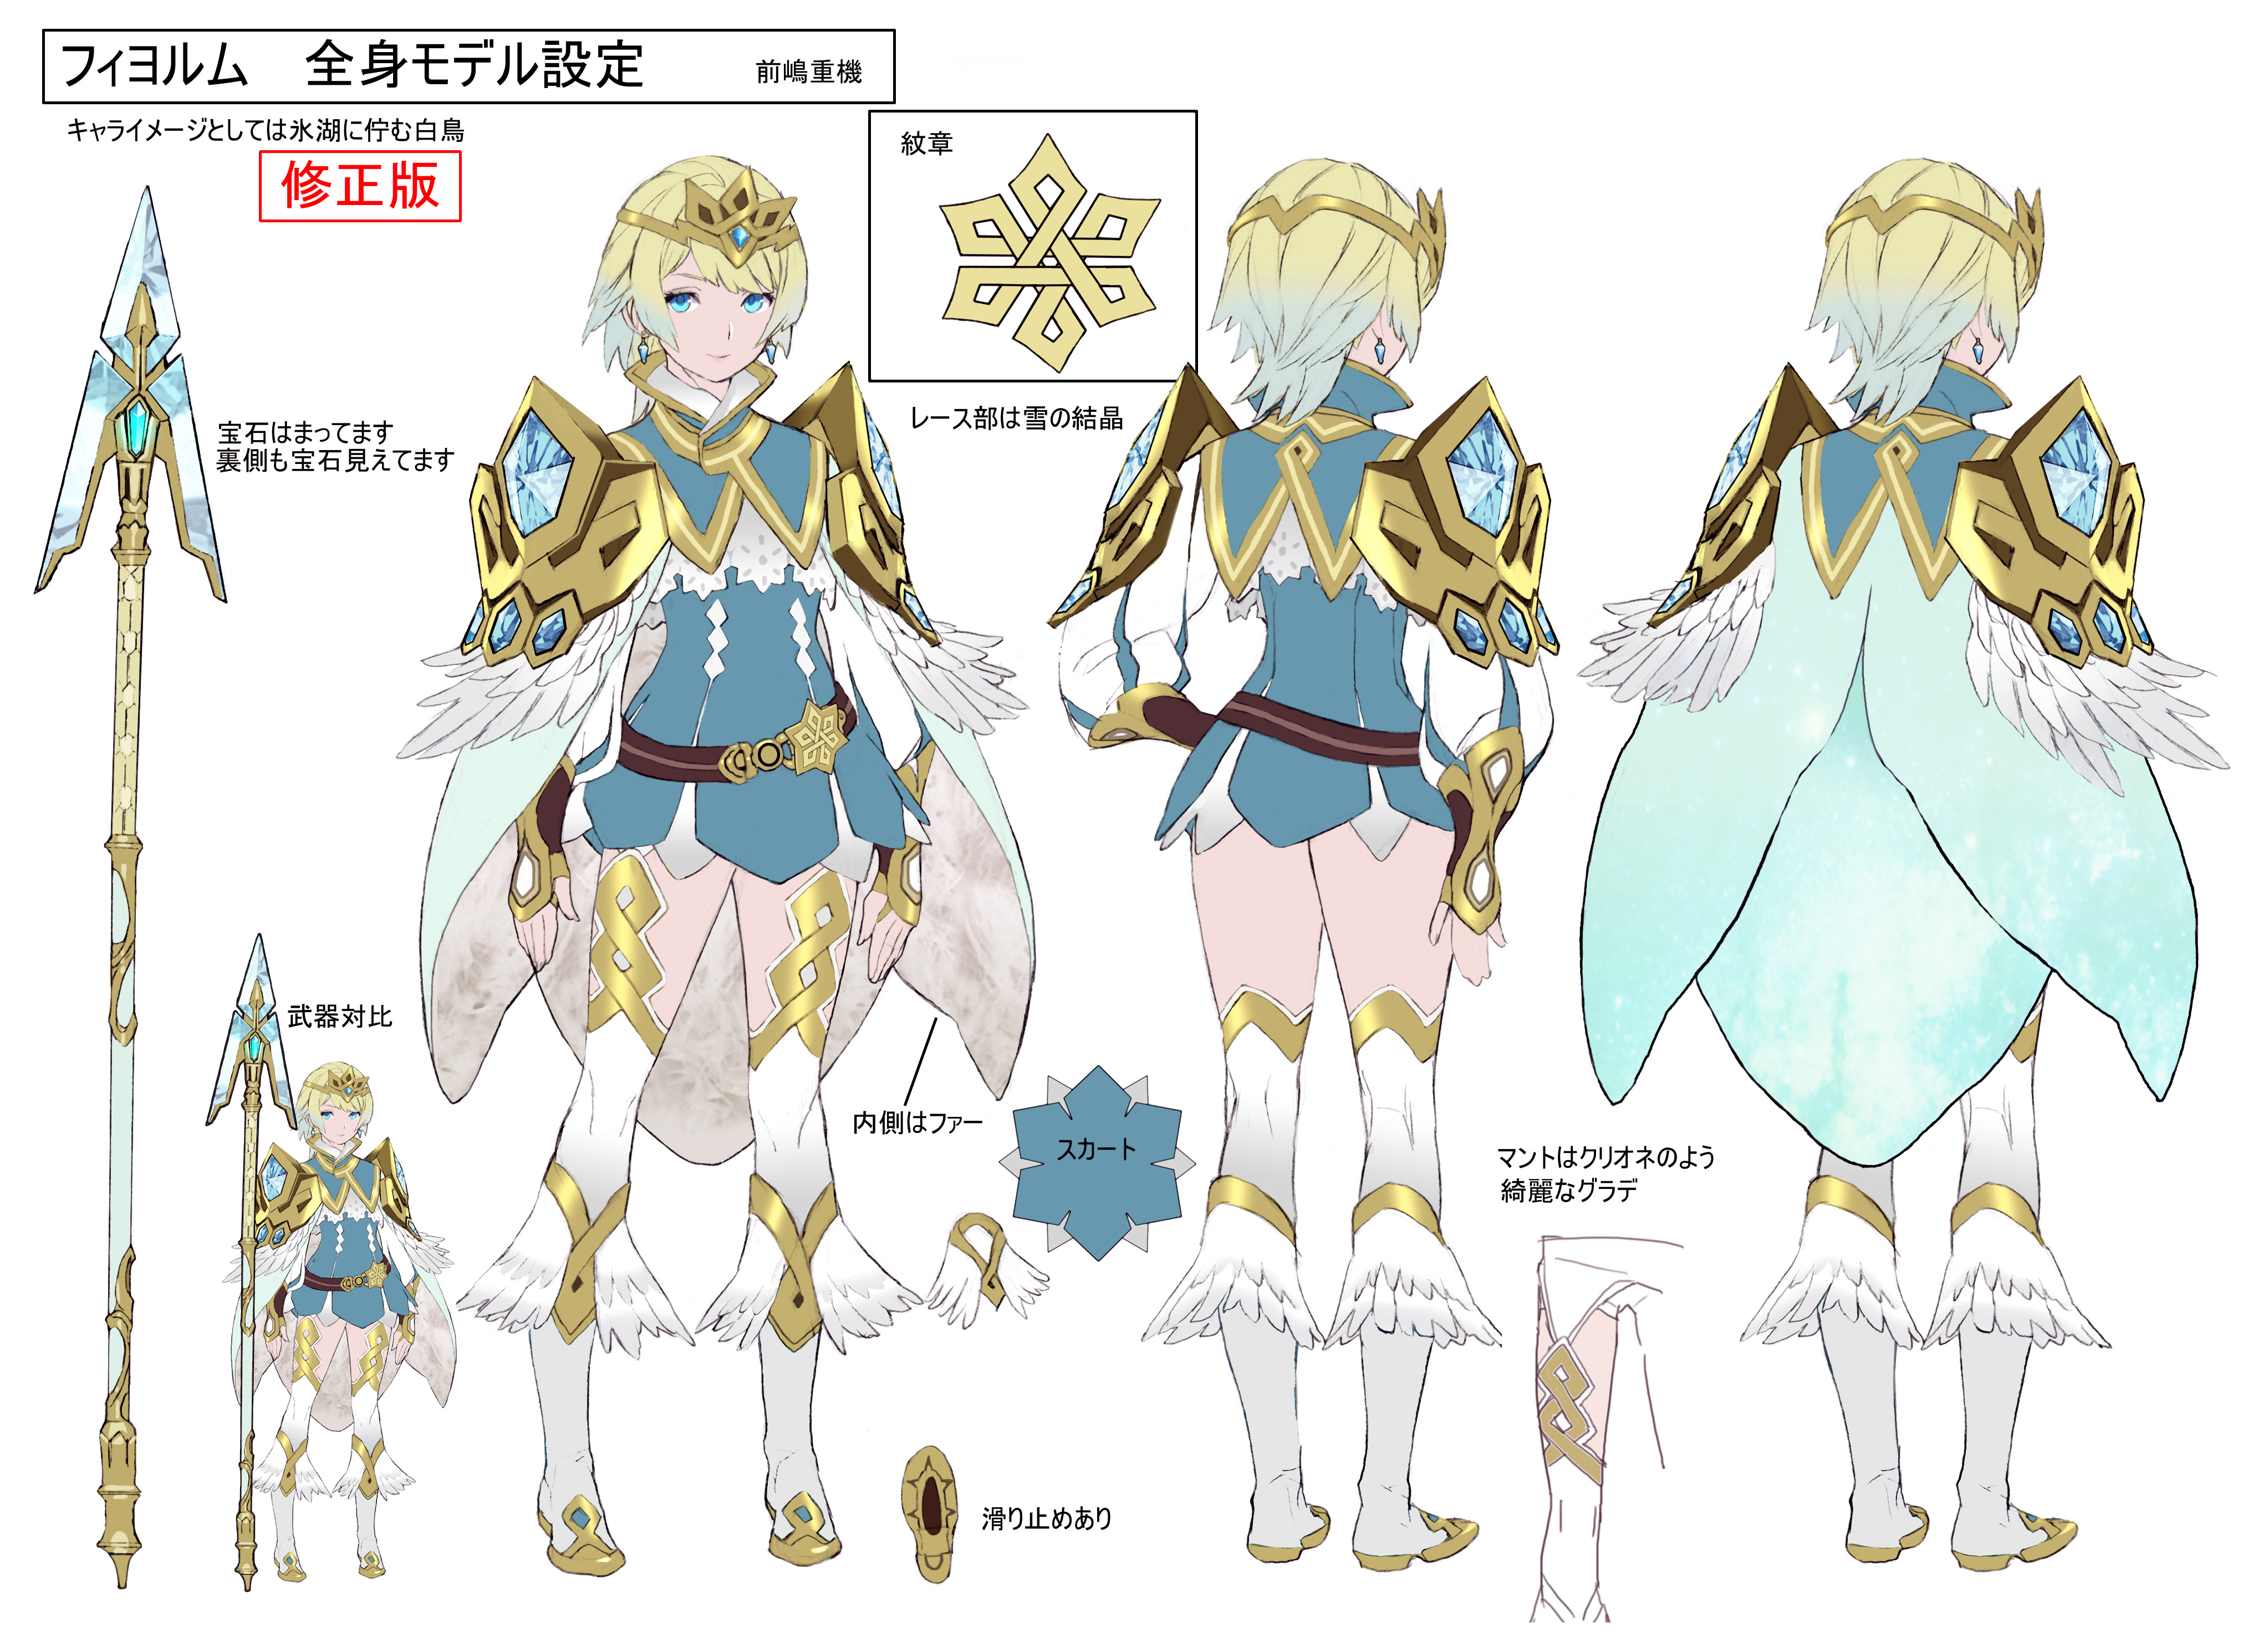 fjorm thought artwork — FEH